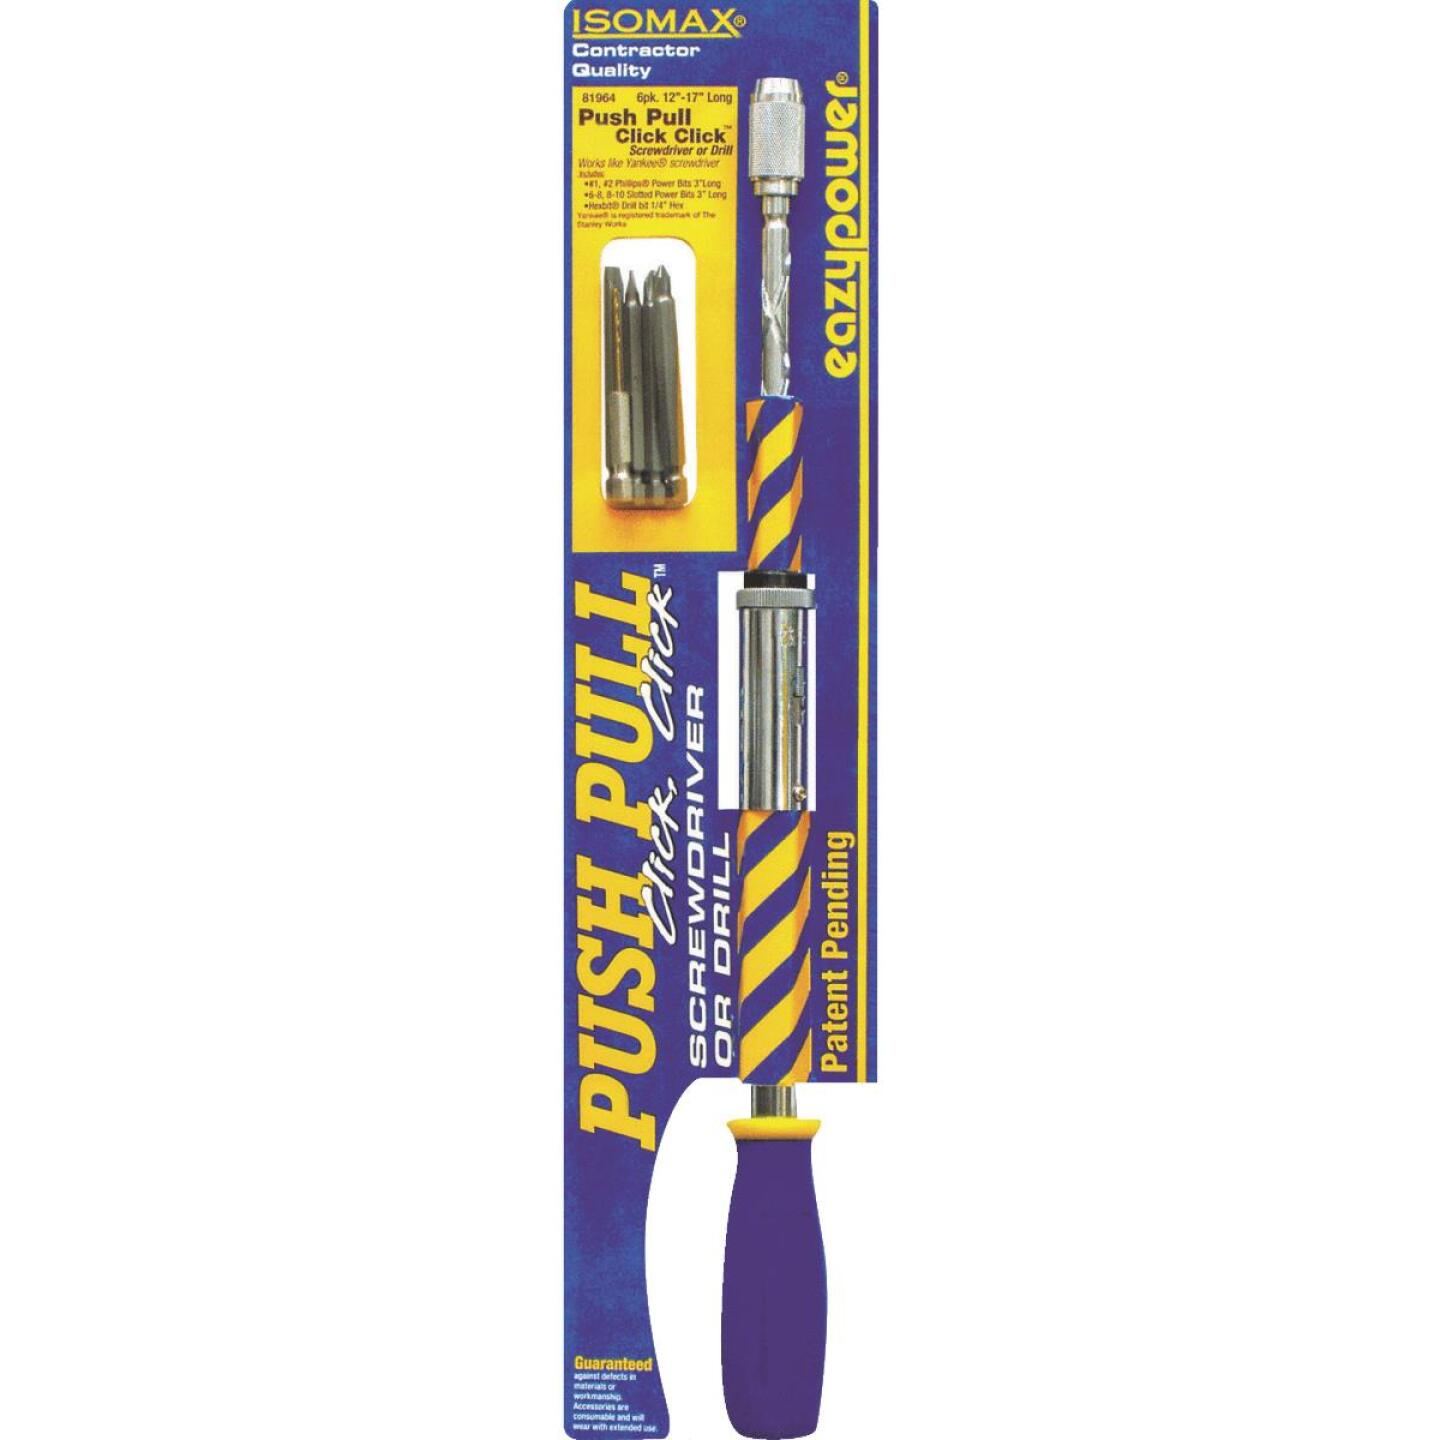 Eazypower Push Pull Click Click Screwdriver/Hand Drill Image 1